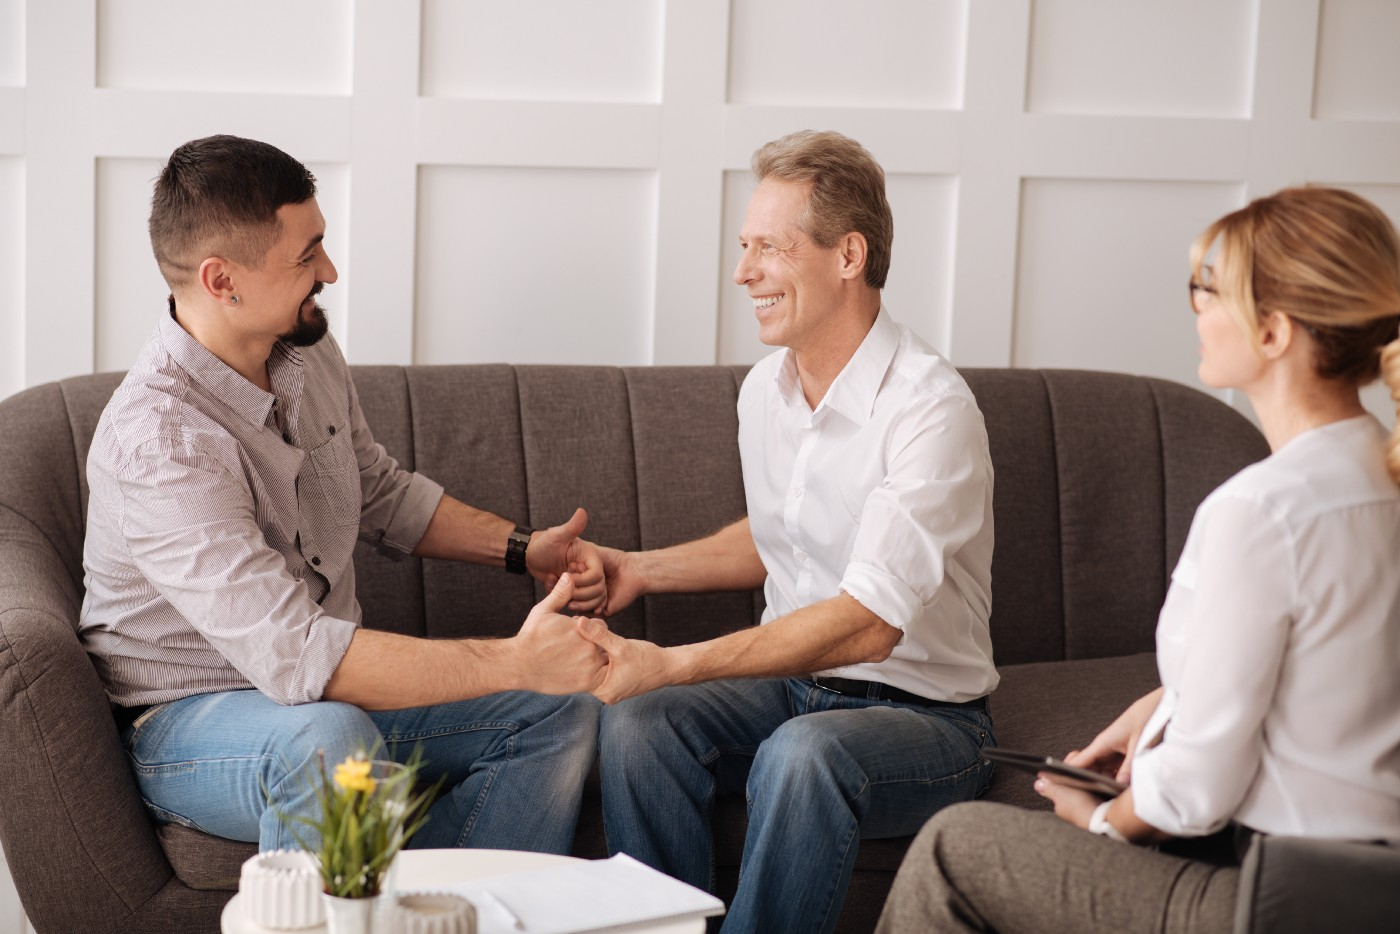 A gay couple holds hands in a therapy session and looks at each other with joy.